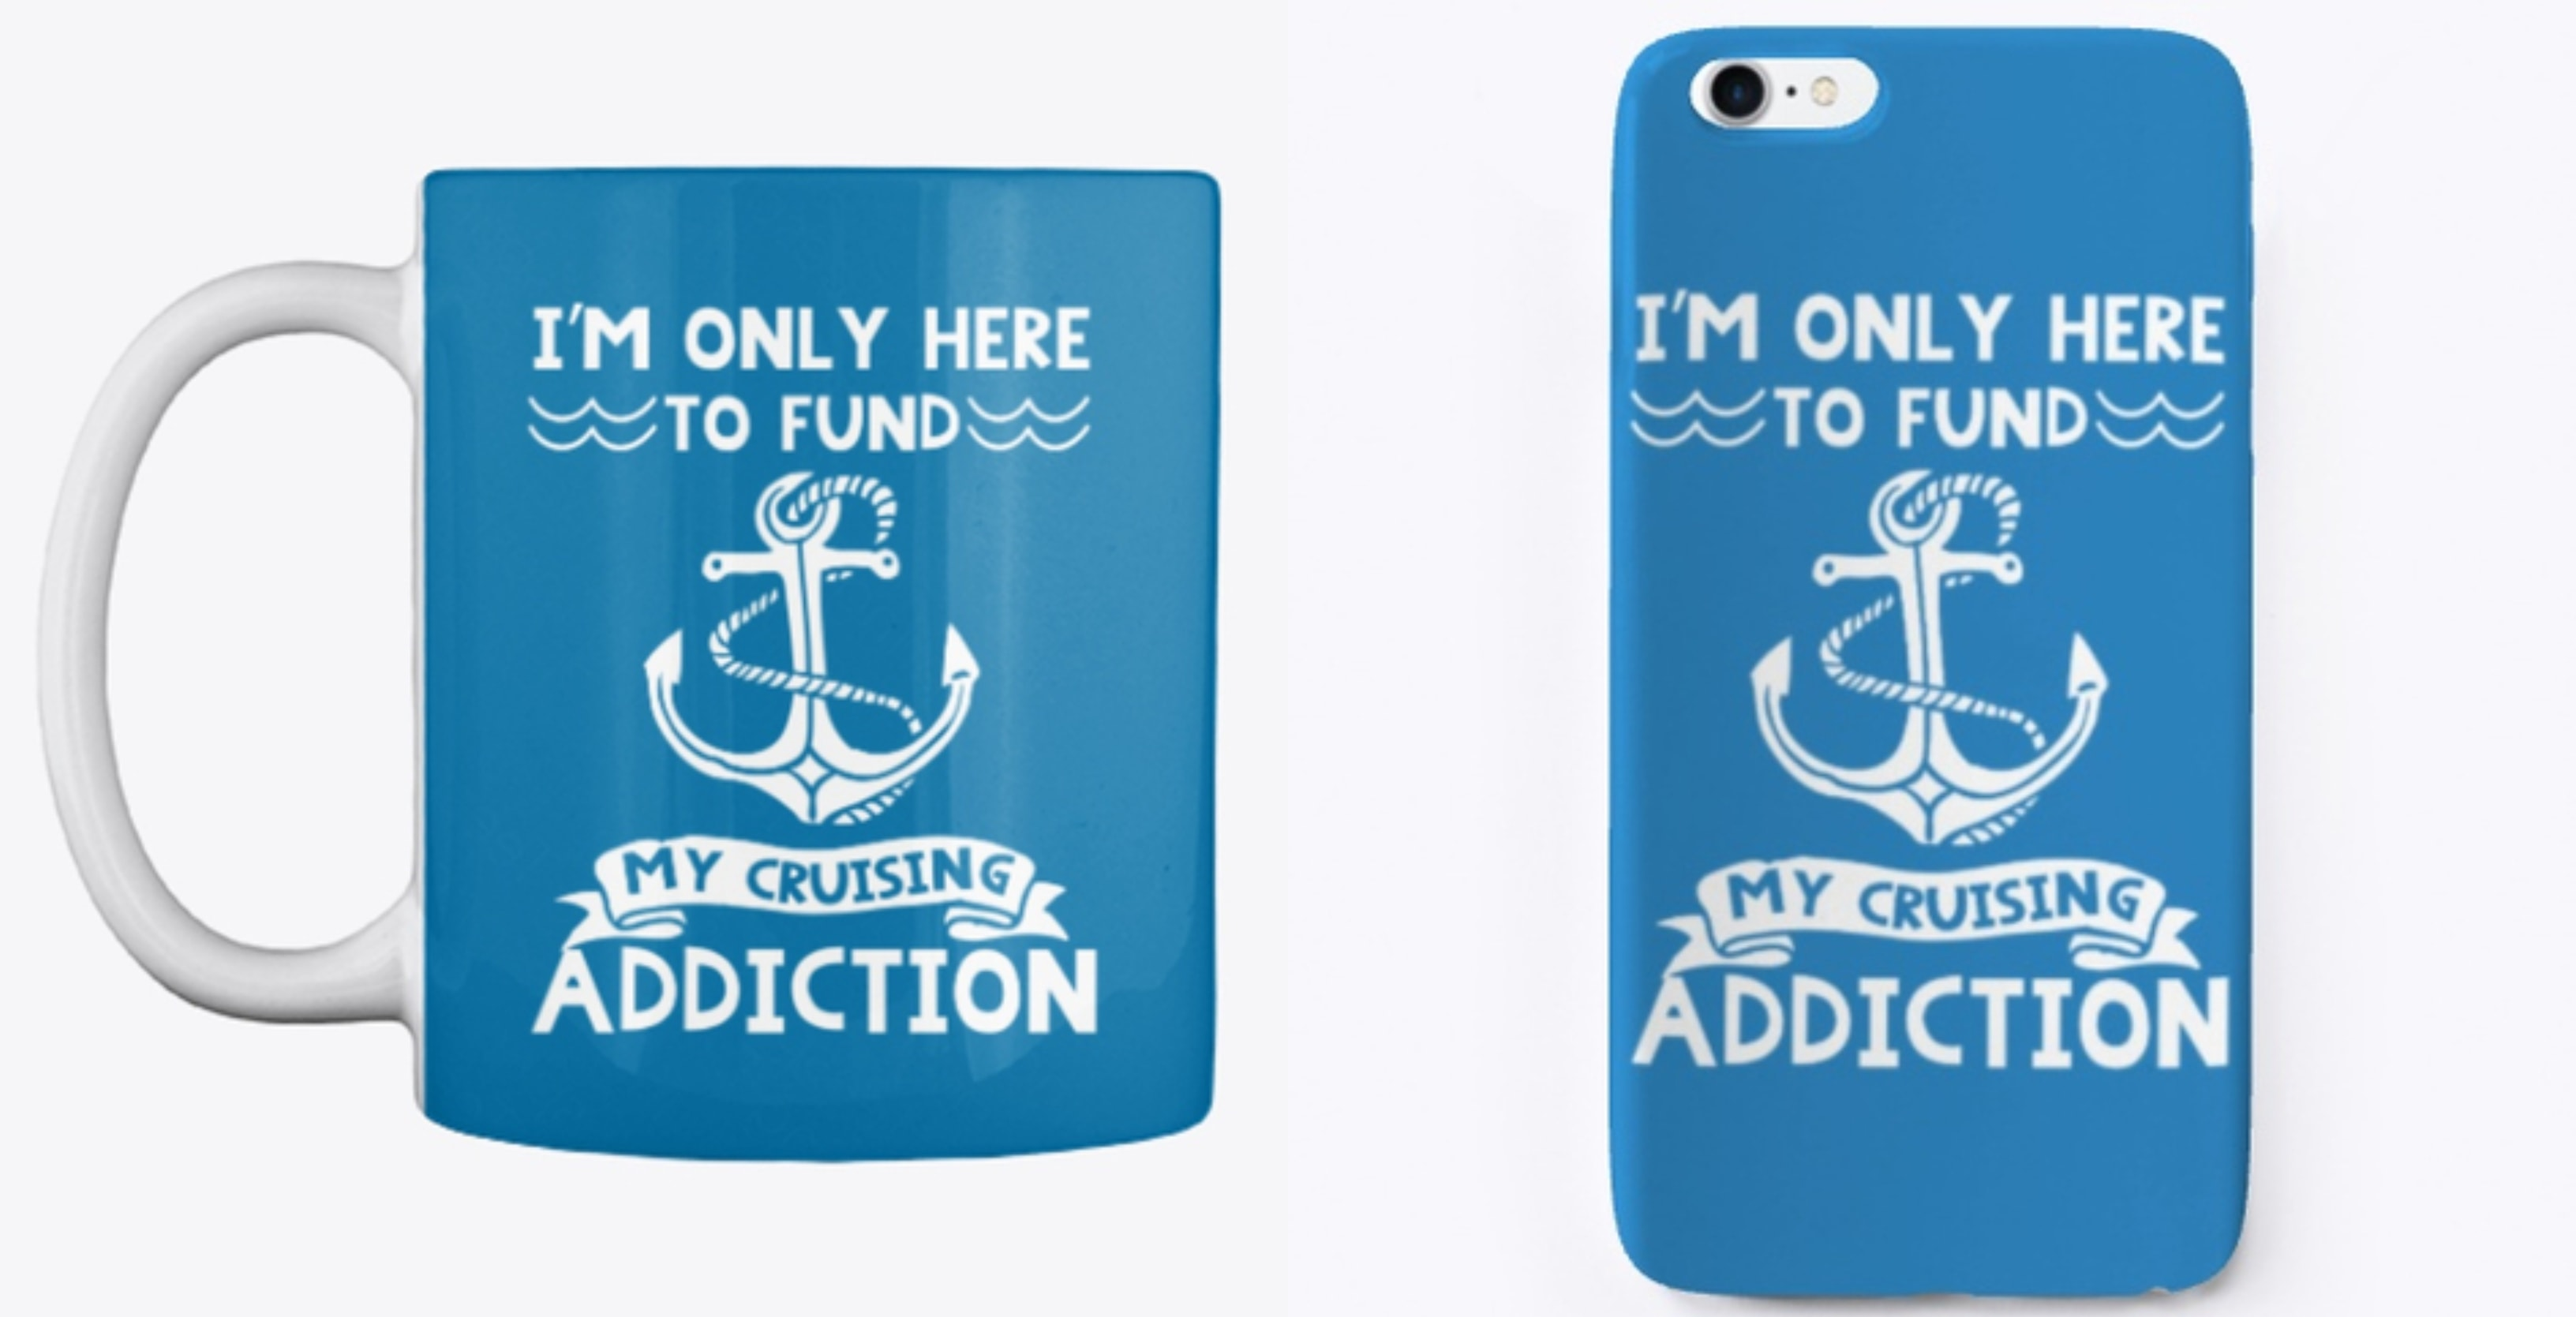 Funny Cruise Mug Phone Case I'm only here to fund my cruising addiction.